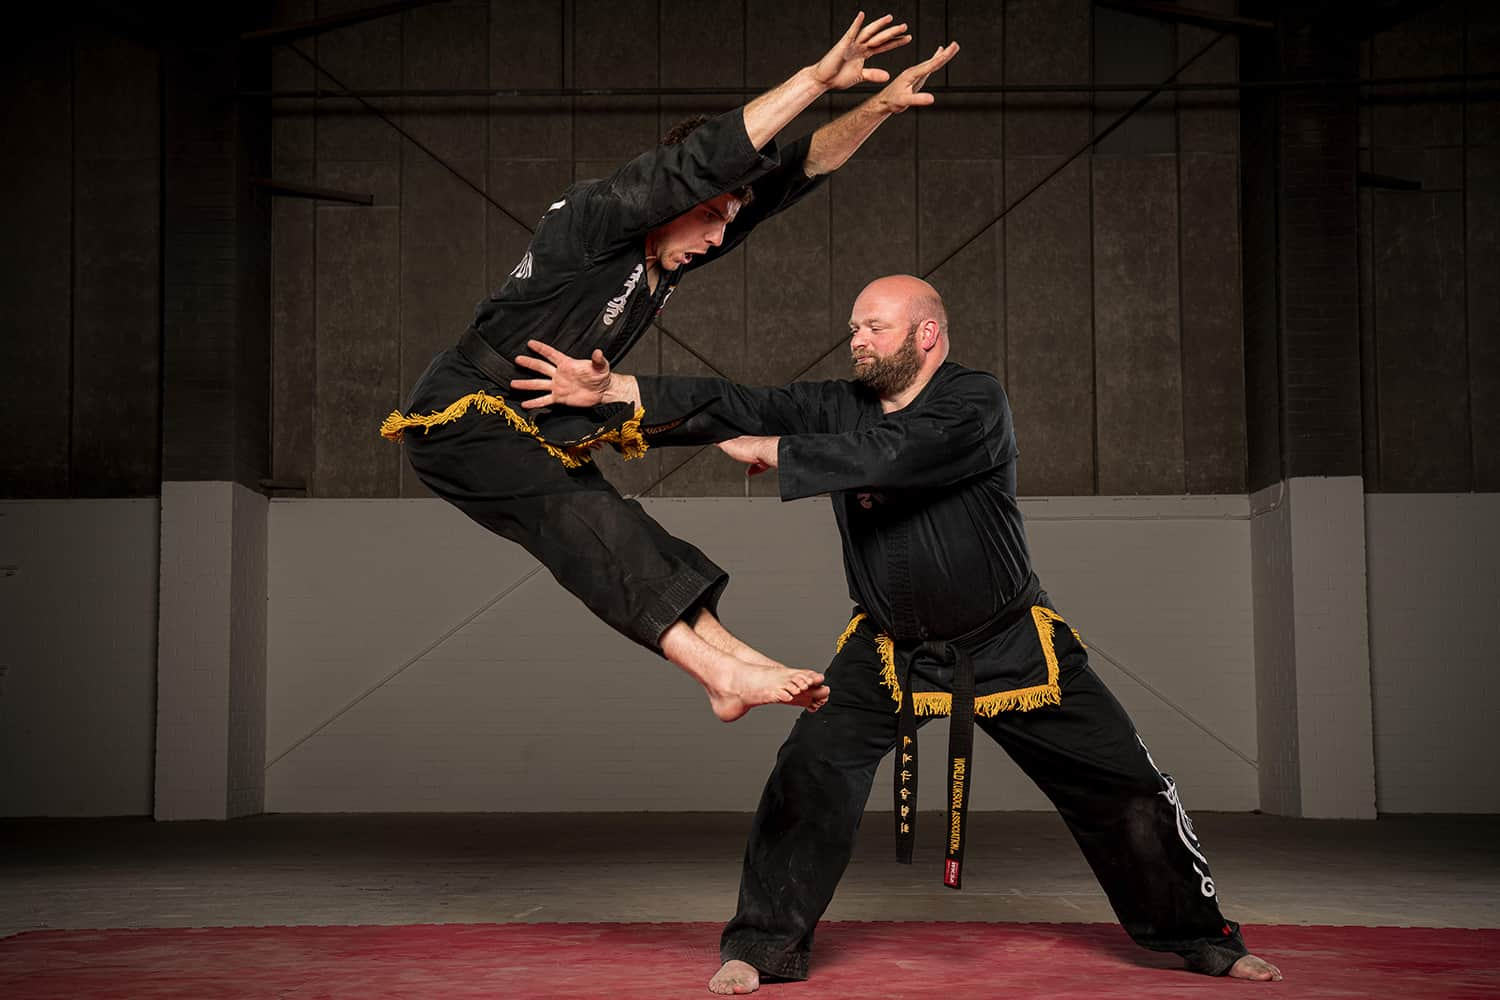 Bryan Jamieson Kuk Sool Won black belt teaching